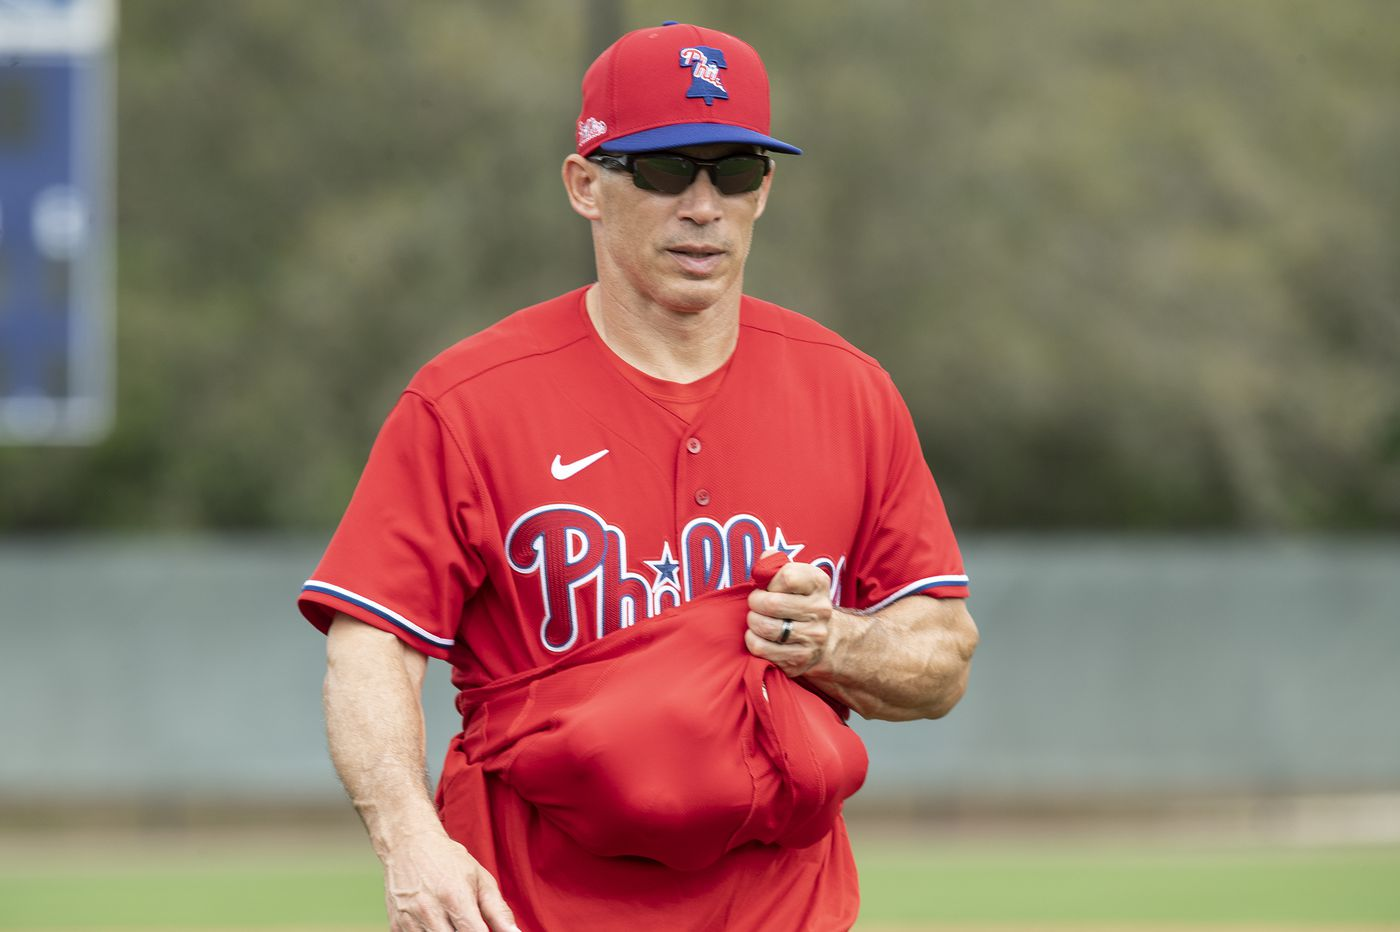 Phillies manager Joe Girardi says controversial video clip was about his Yankees catching the cheaters, not doing the cheating